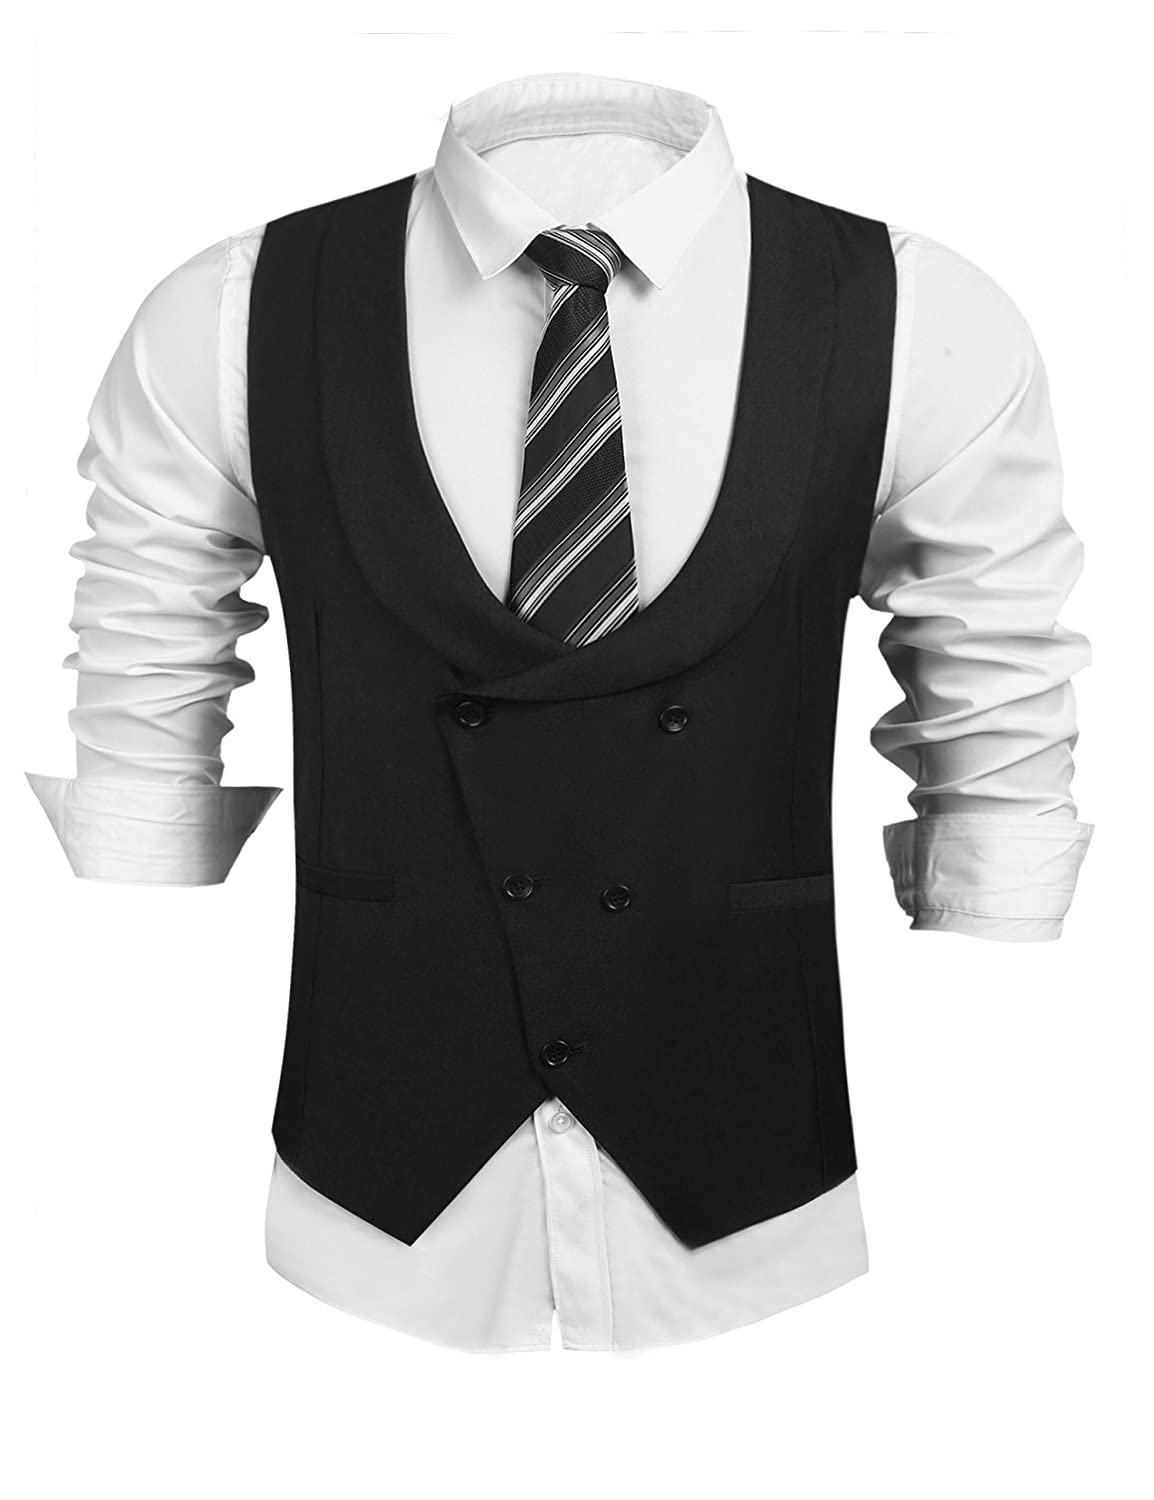 New Vintage Tuxedos, Tailcoats, Morning Suits, Dinner Jackets COOFANDY Mens Formal Suit Vest Business Waistcoat Double Breasted U-Neck Shawl Collar Slim Fit Waistcoat for Suit Tuxedo $28.99 AT vintagedancer.com